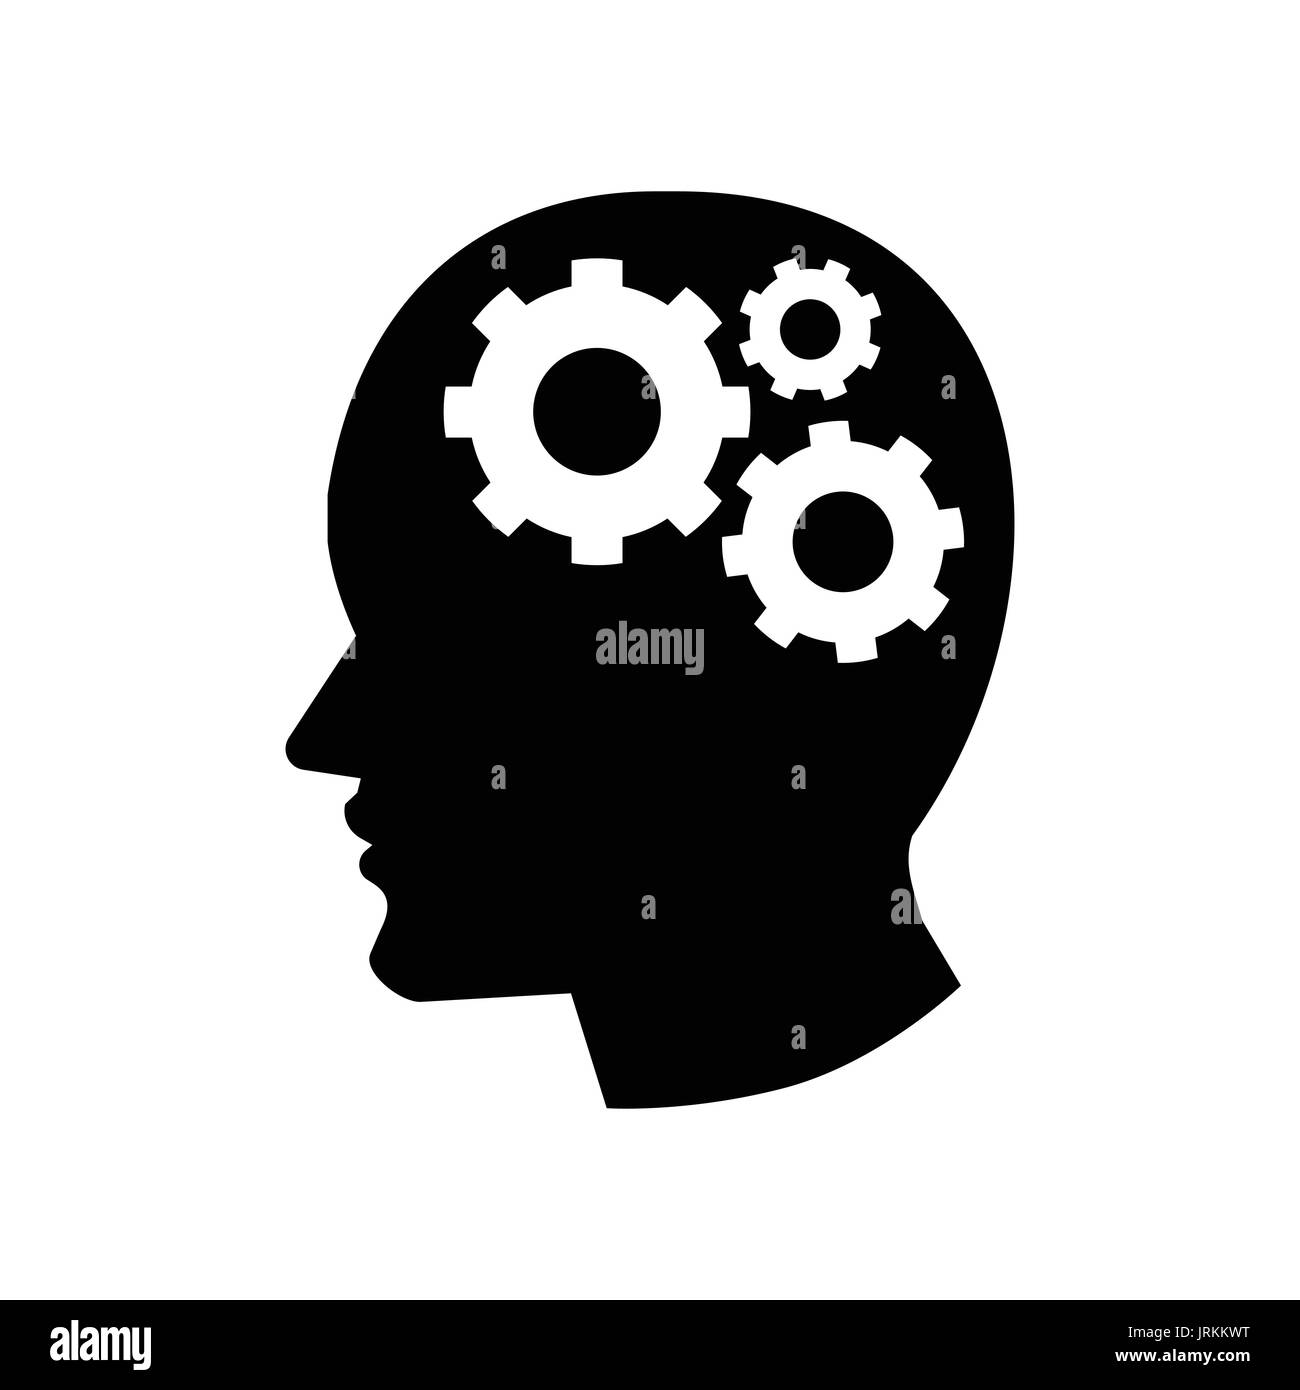 Pictograph of Gear in Head icon, iconic symbol on white background - Vector Iconic Design. - Stock Image